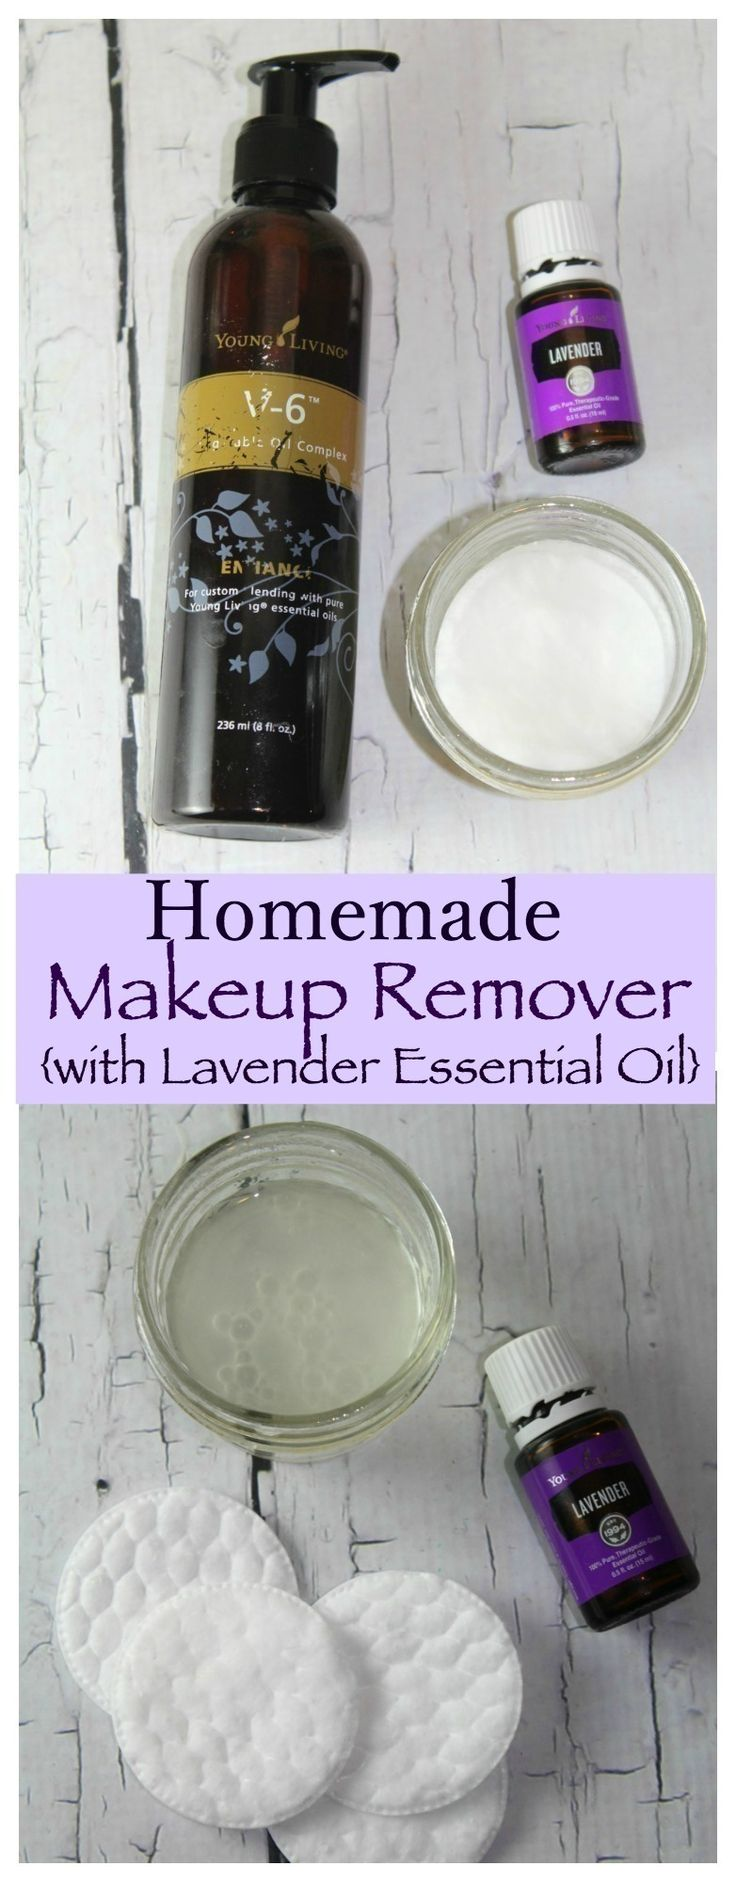 This Homemade Makeup Remover with Lavender Essential Oil